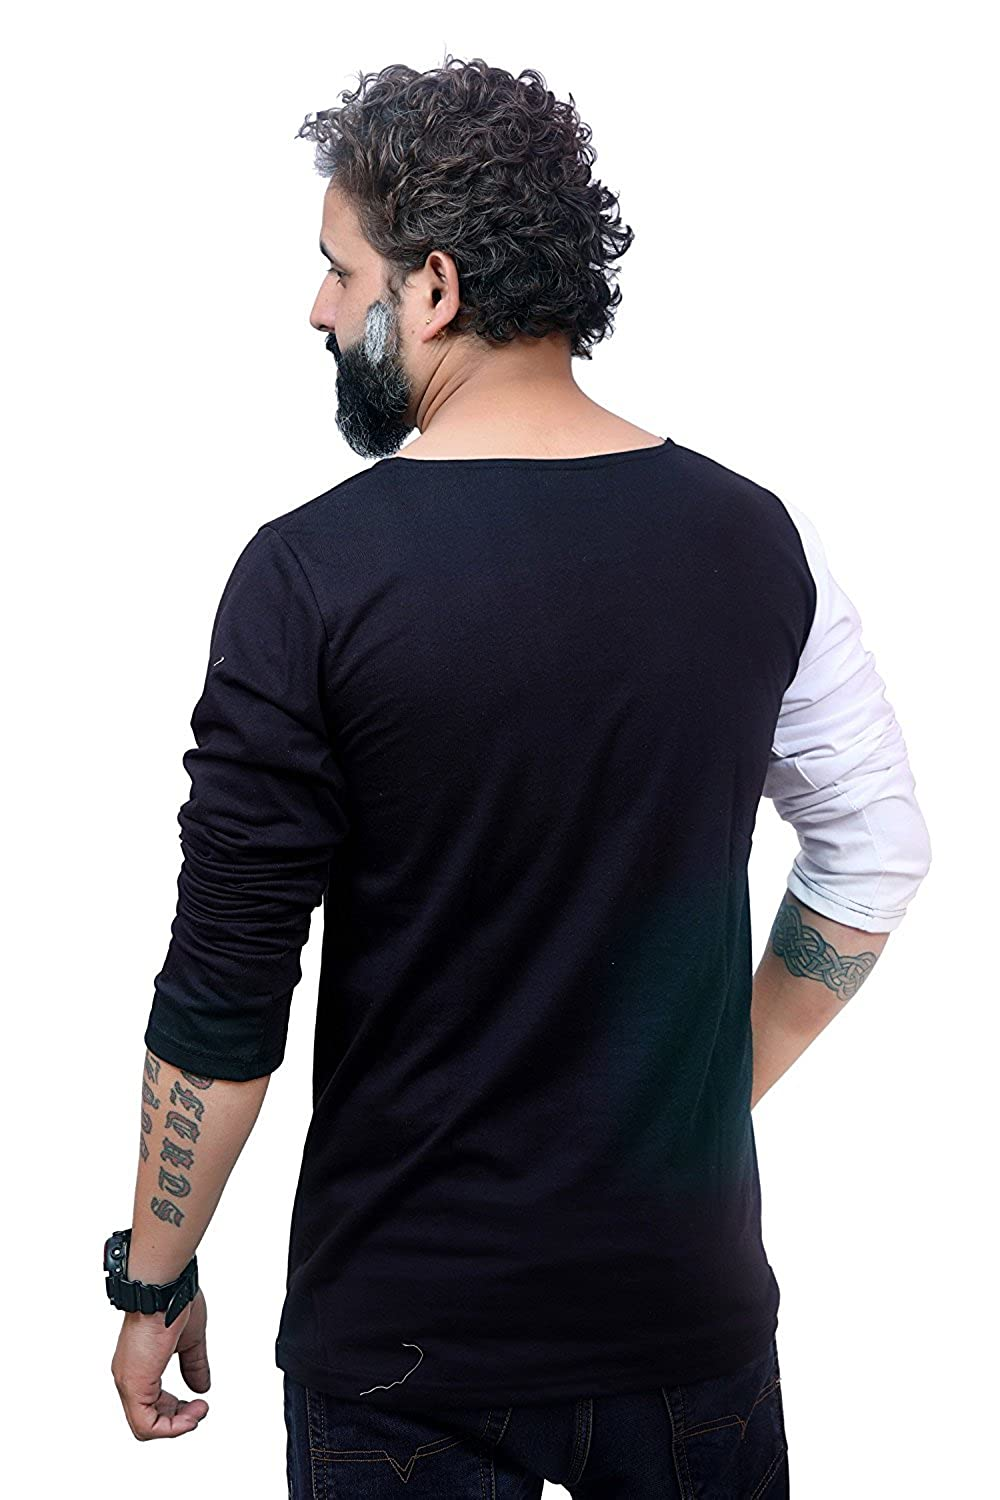 f697a0e92 EG Scoop Neck T-Shirt for Men's: Amazon.in: Clothing & Accessories